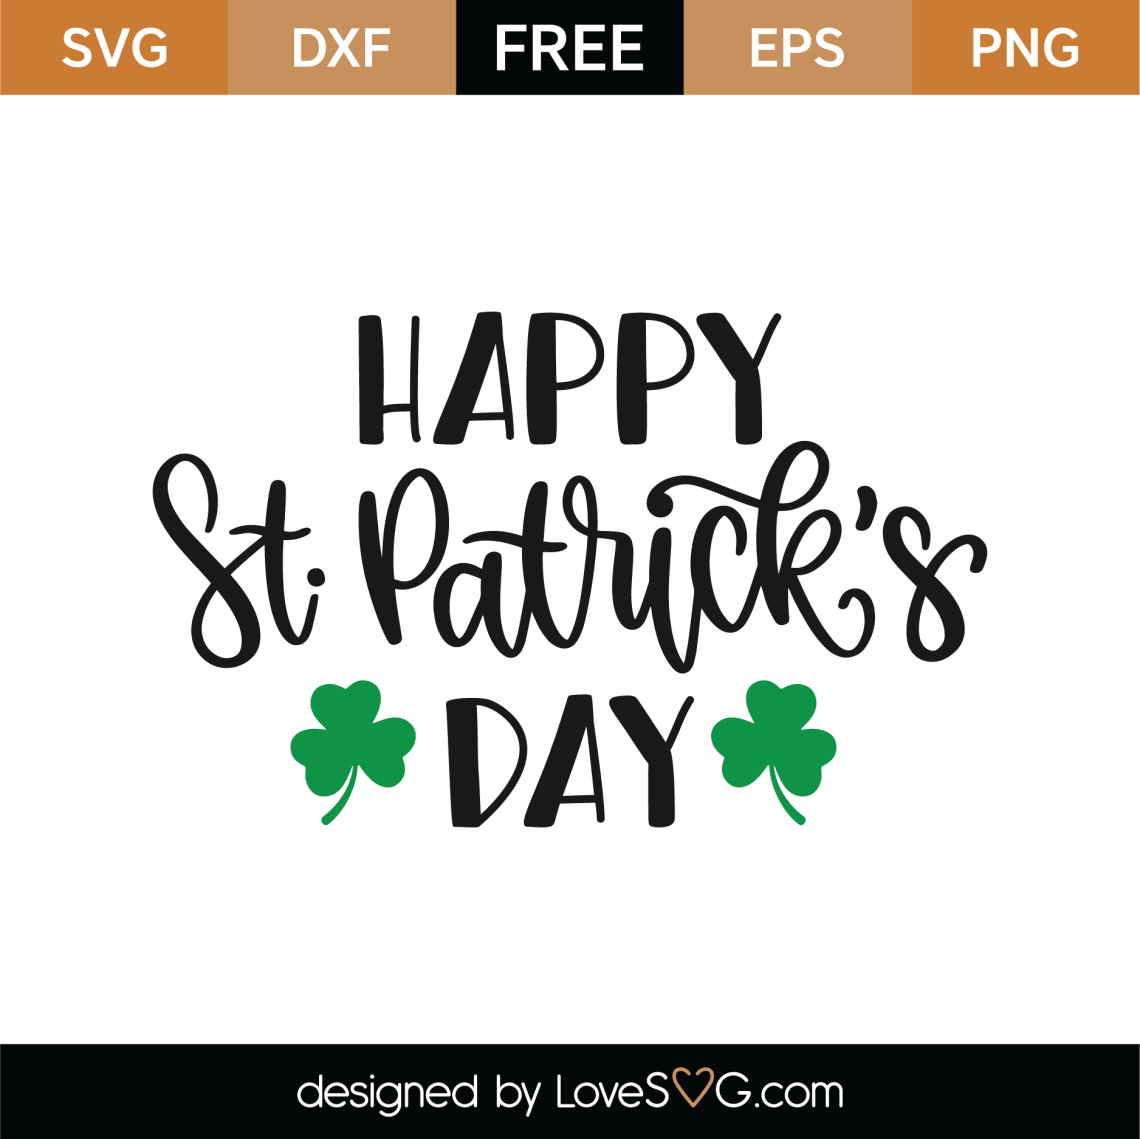 Download Free Happy St Patrick's Day SVG Cut File | Lovesvg.com